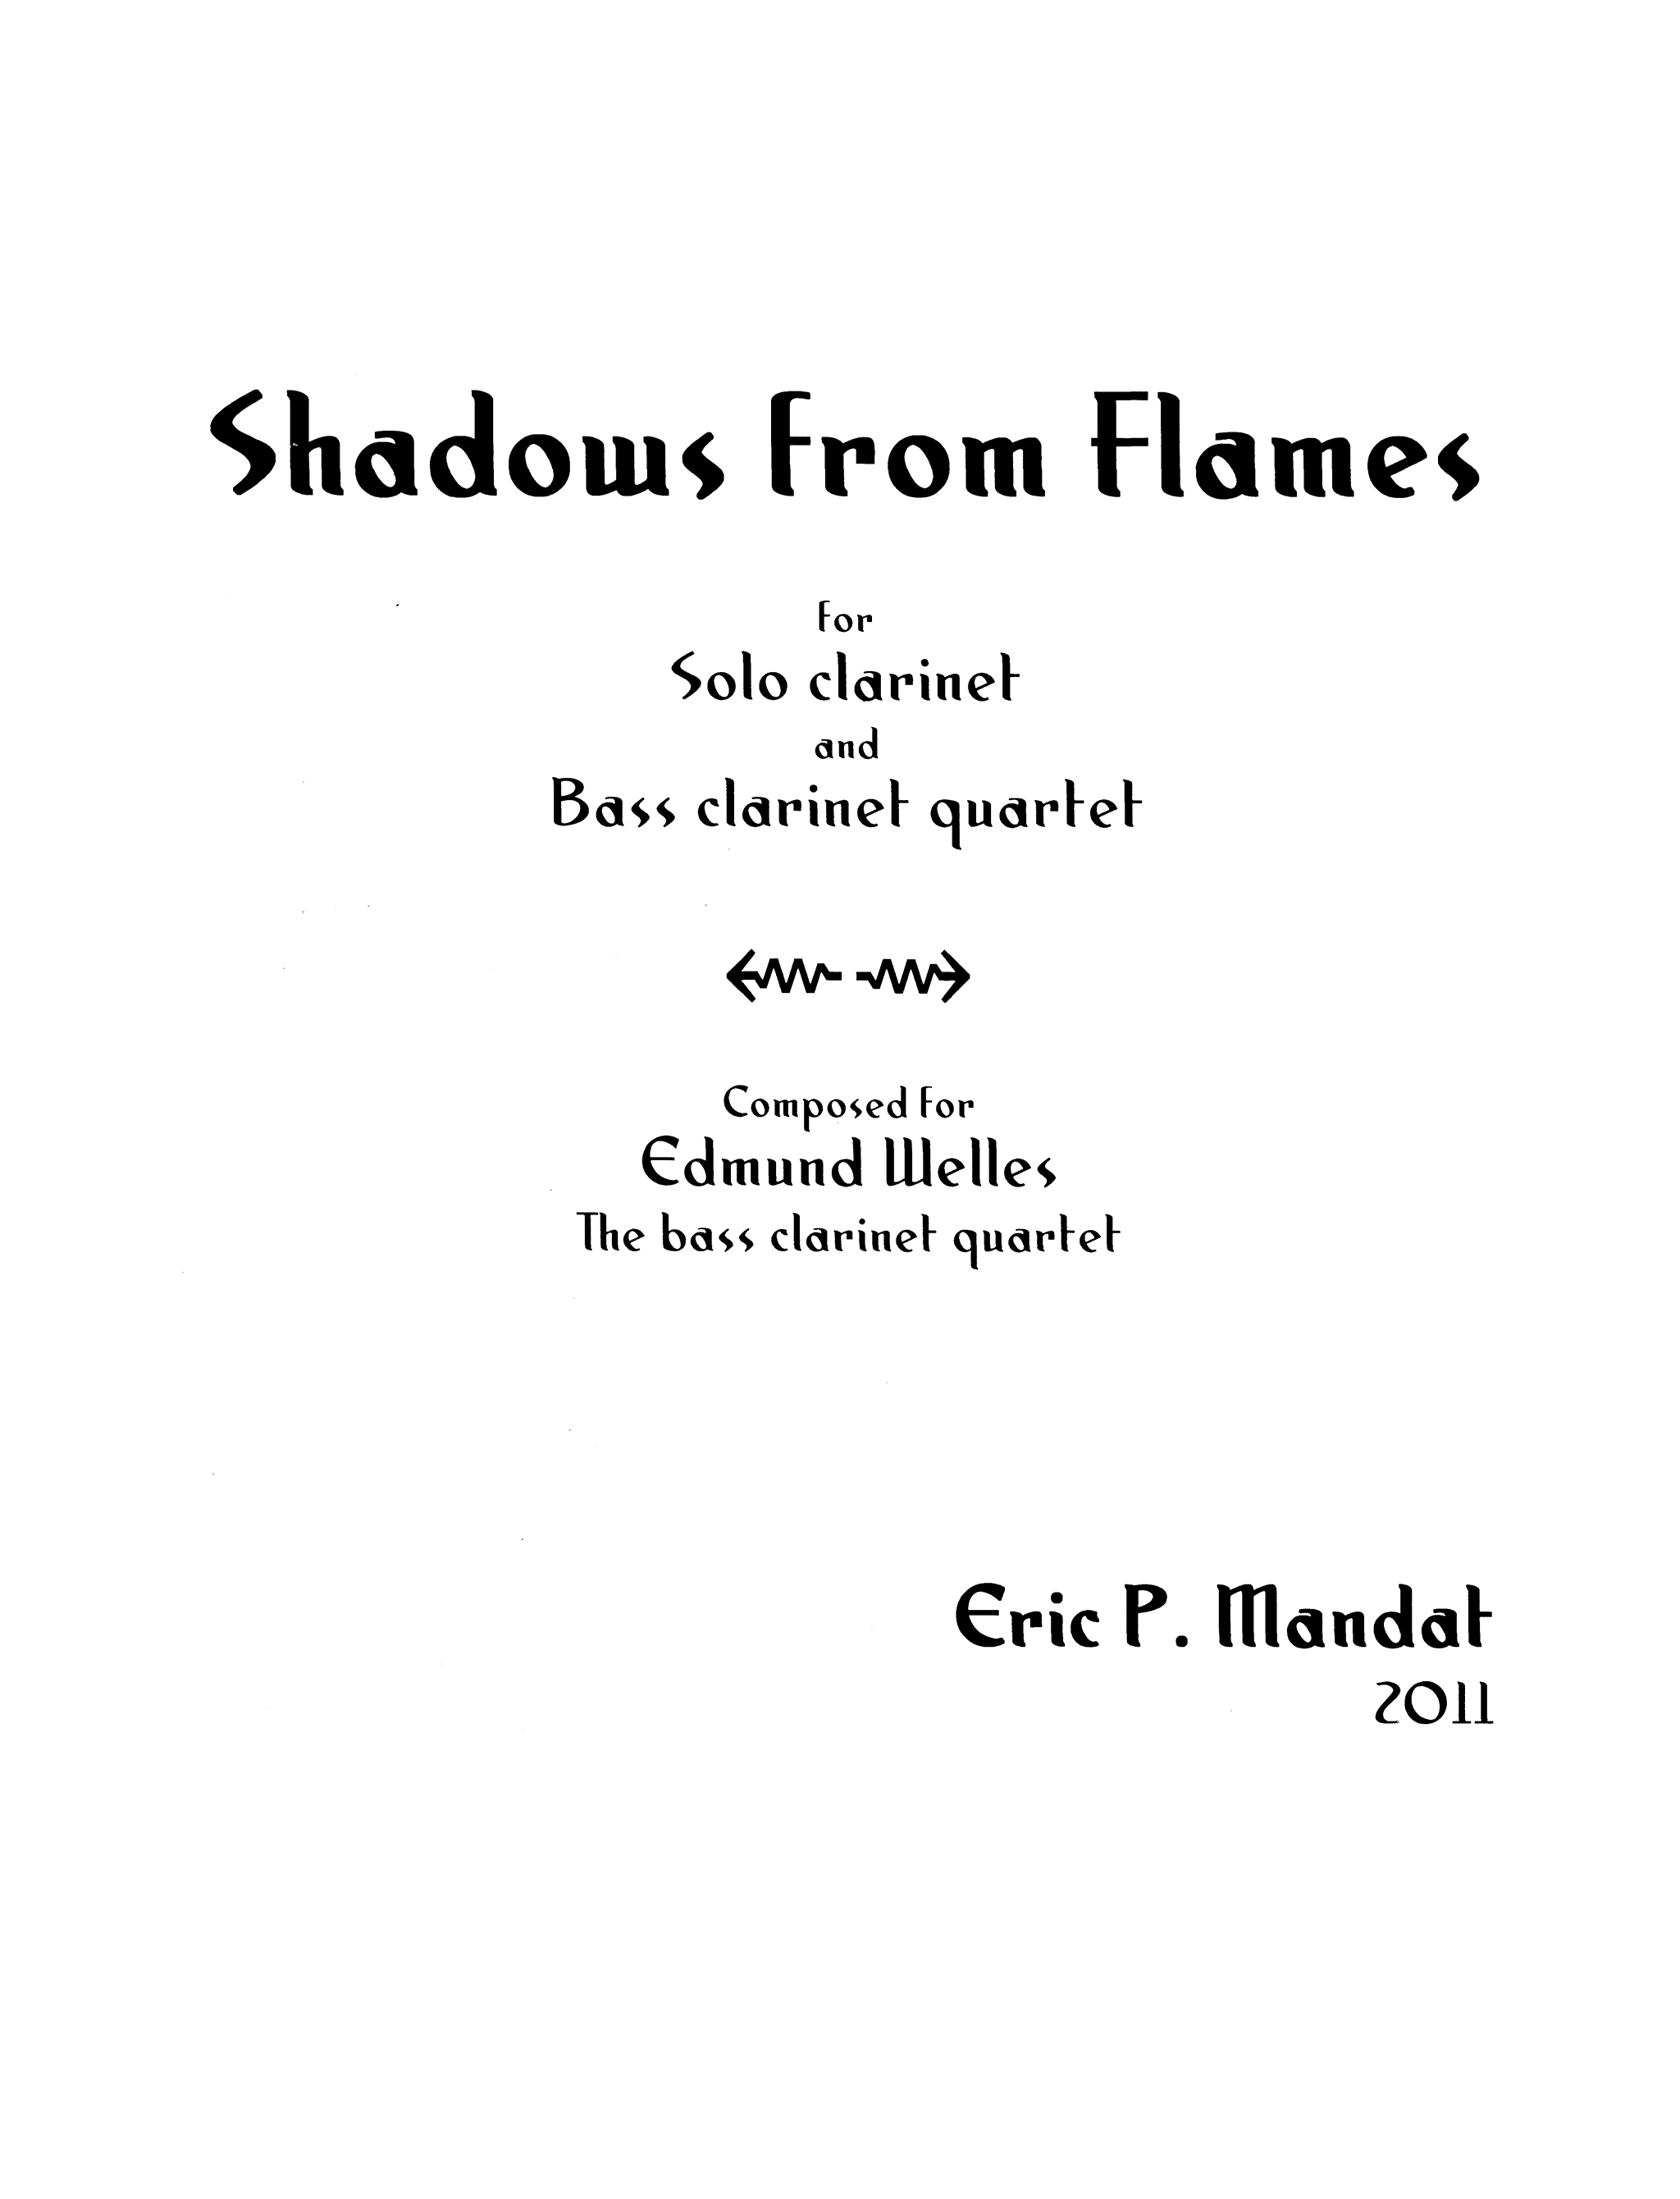 Mandat Shadows from Flames Cover